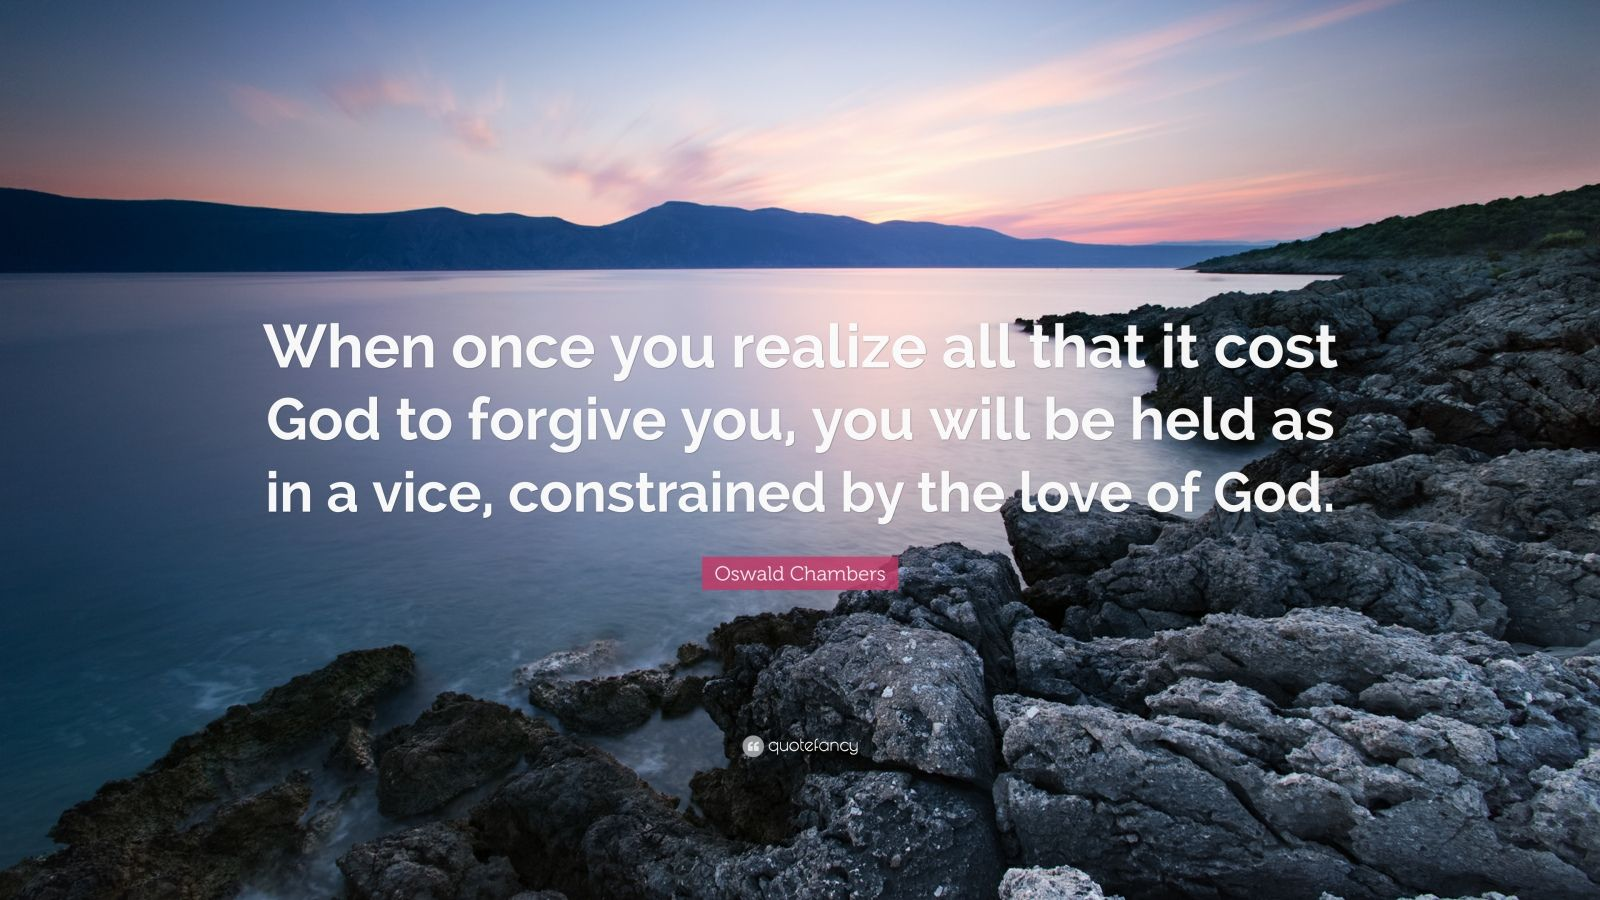 """Oswald Chambers Quote: """"When once you realize all that it cost God to forgive you, you will be held as in a vice, constrained by the love of God."""""""